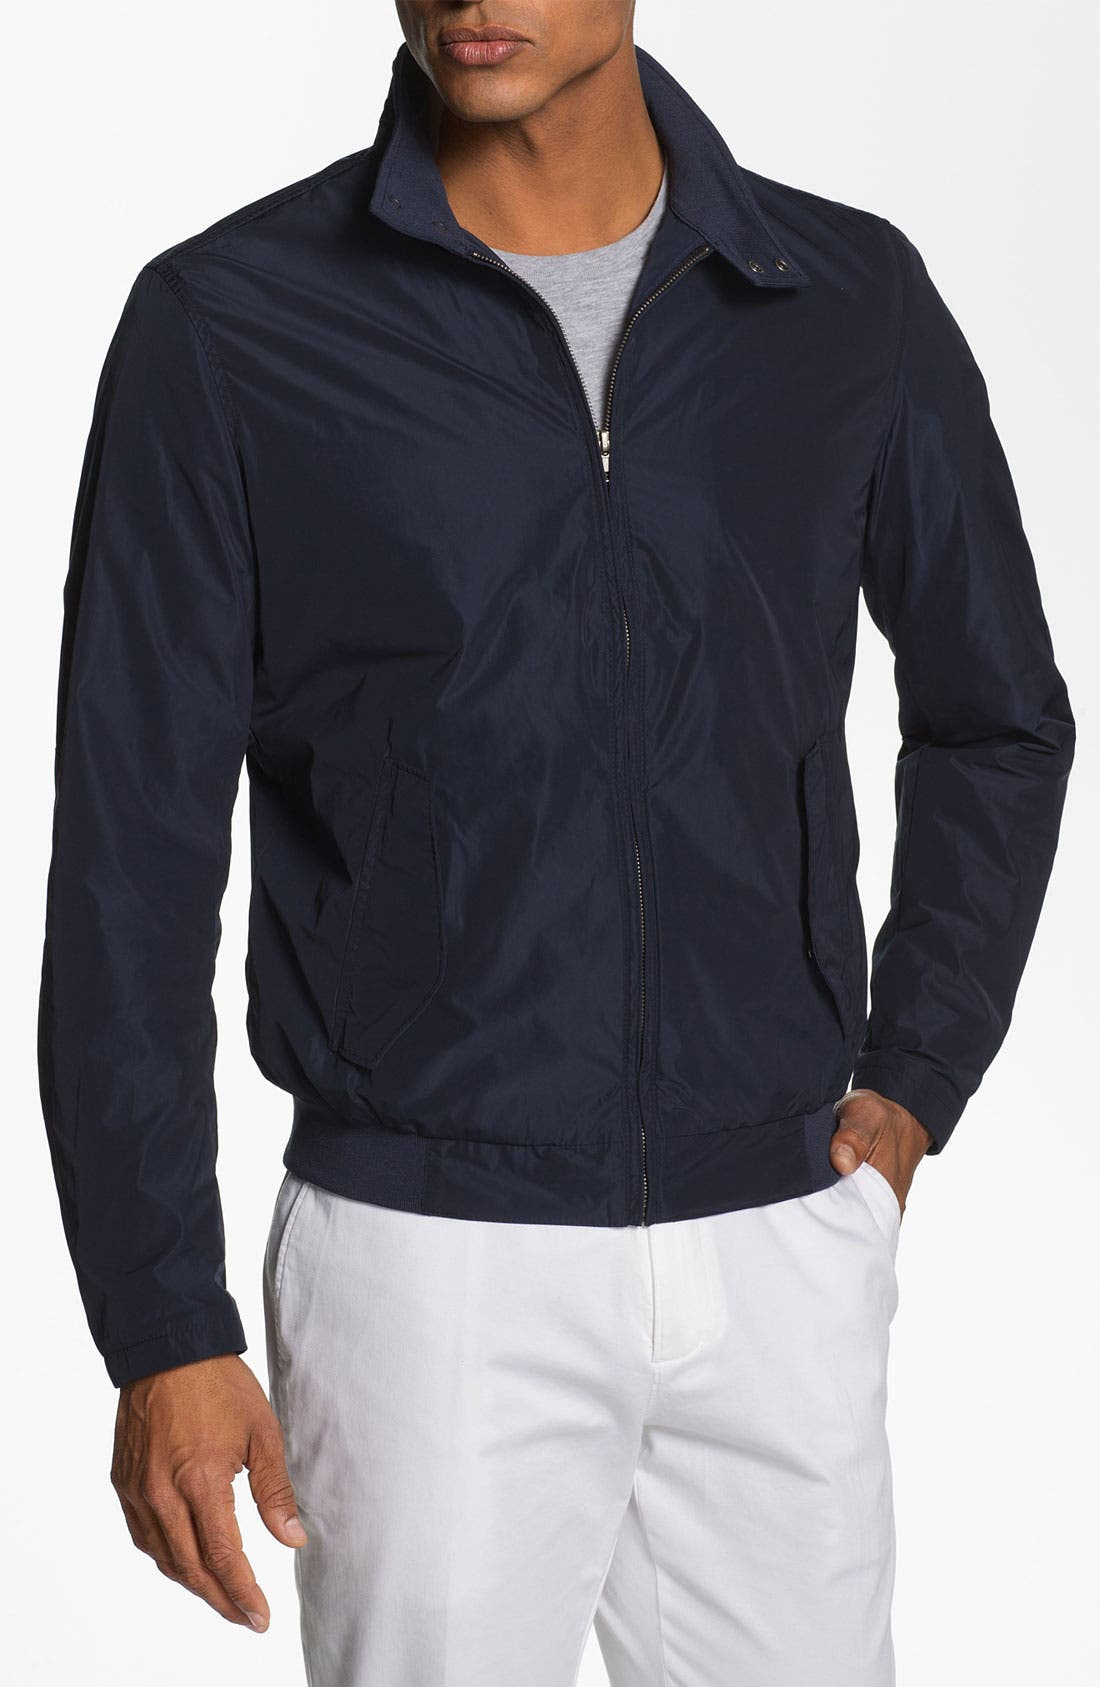 Alternate Image 1 Selected - Victorinox Swiss Army® 'New Duvin' Jacket (Online Only)